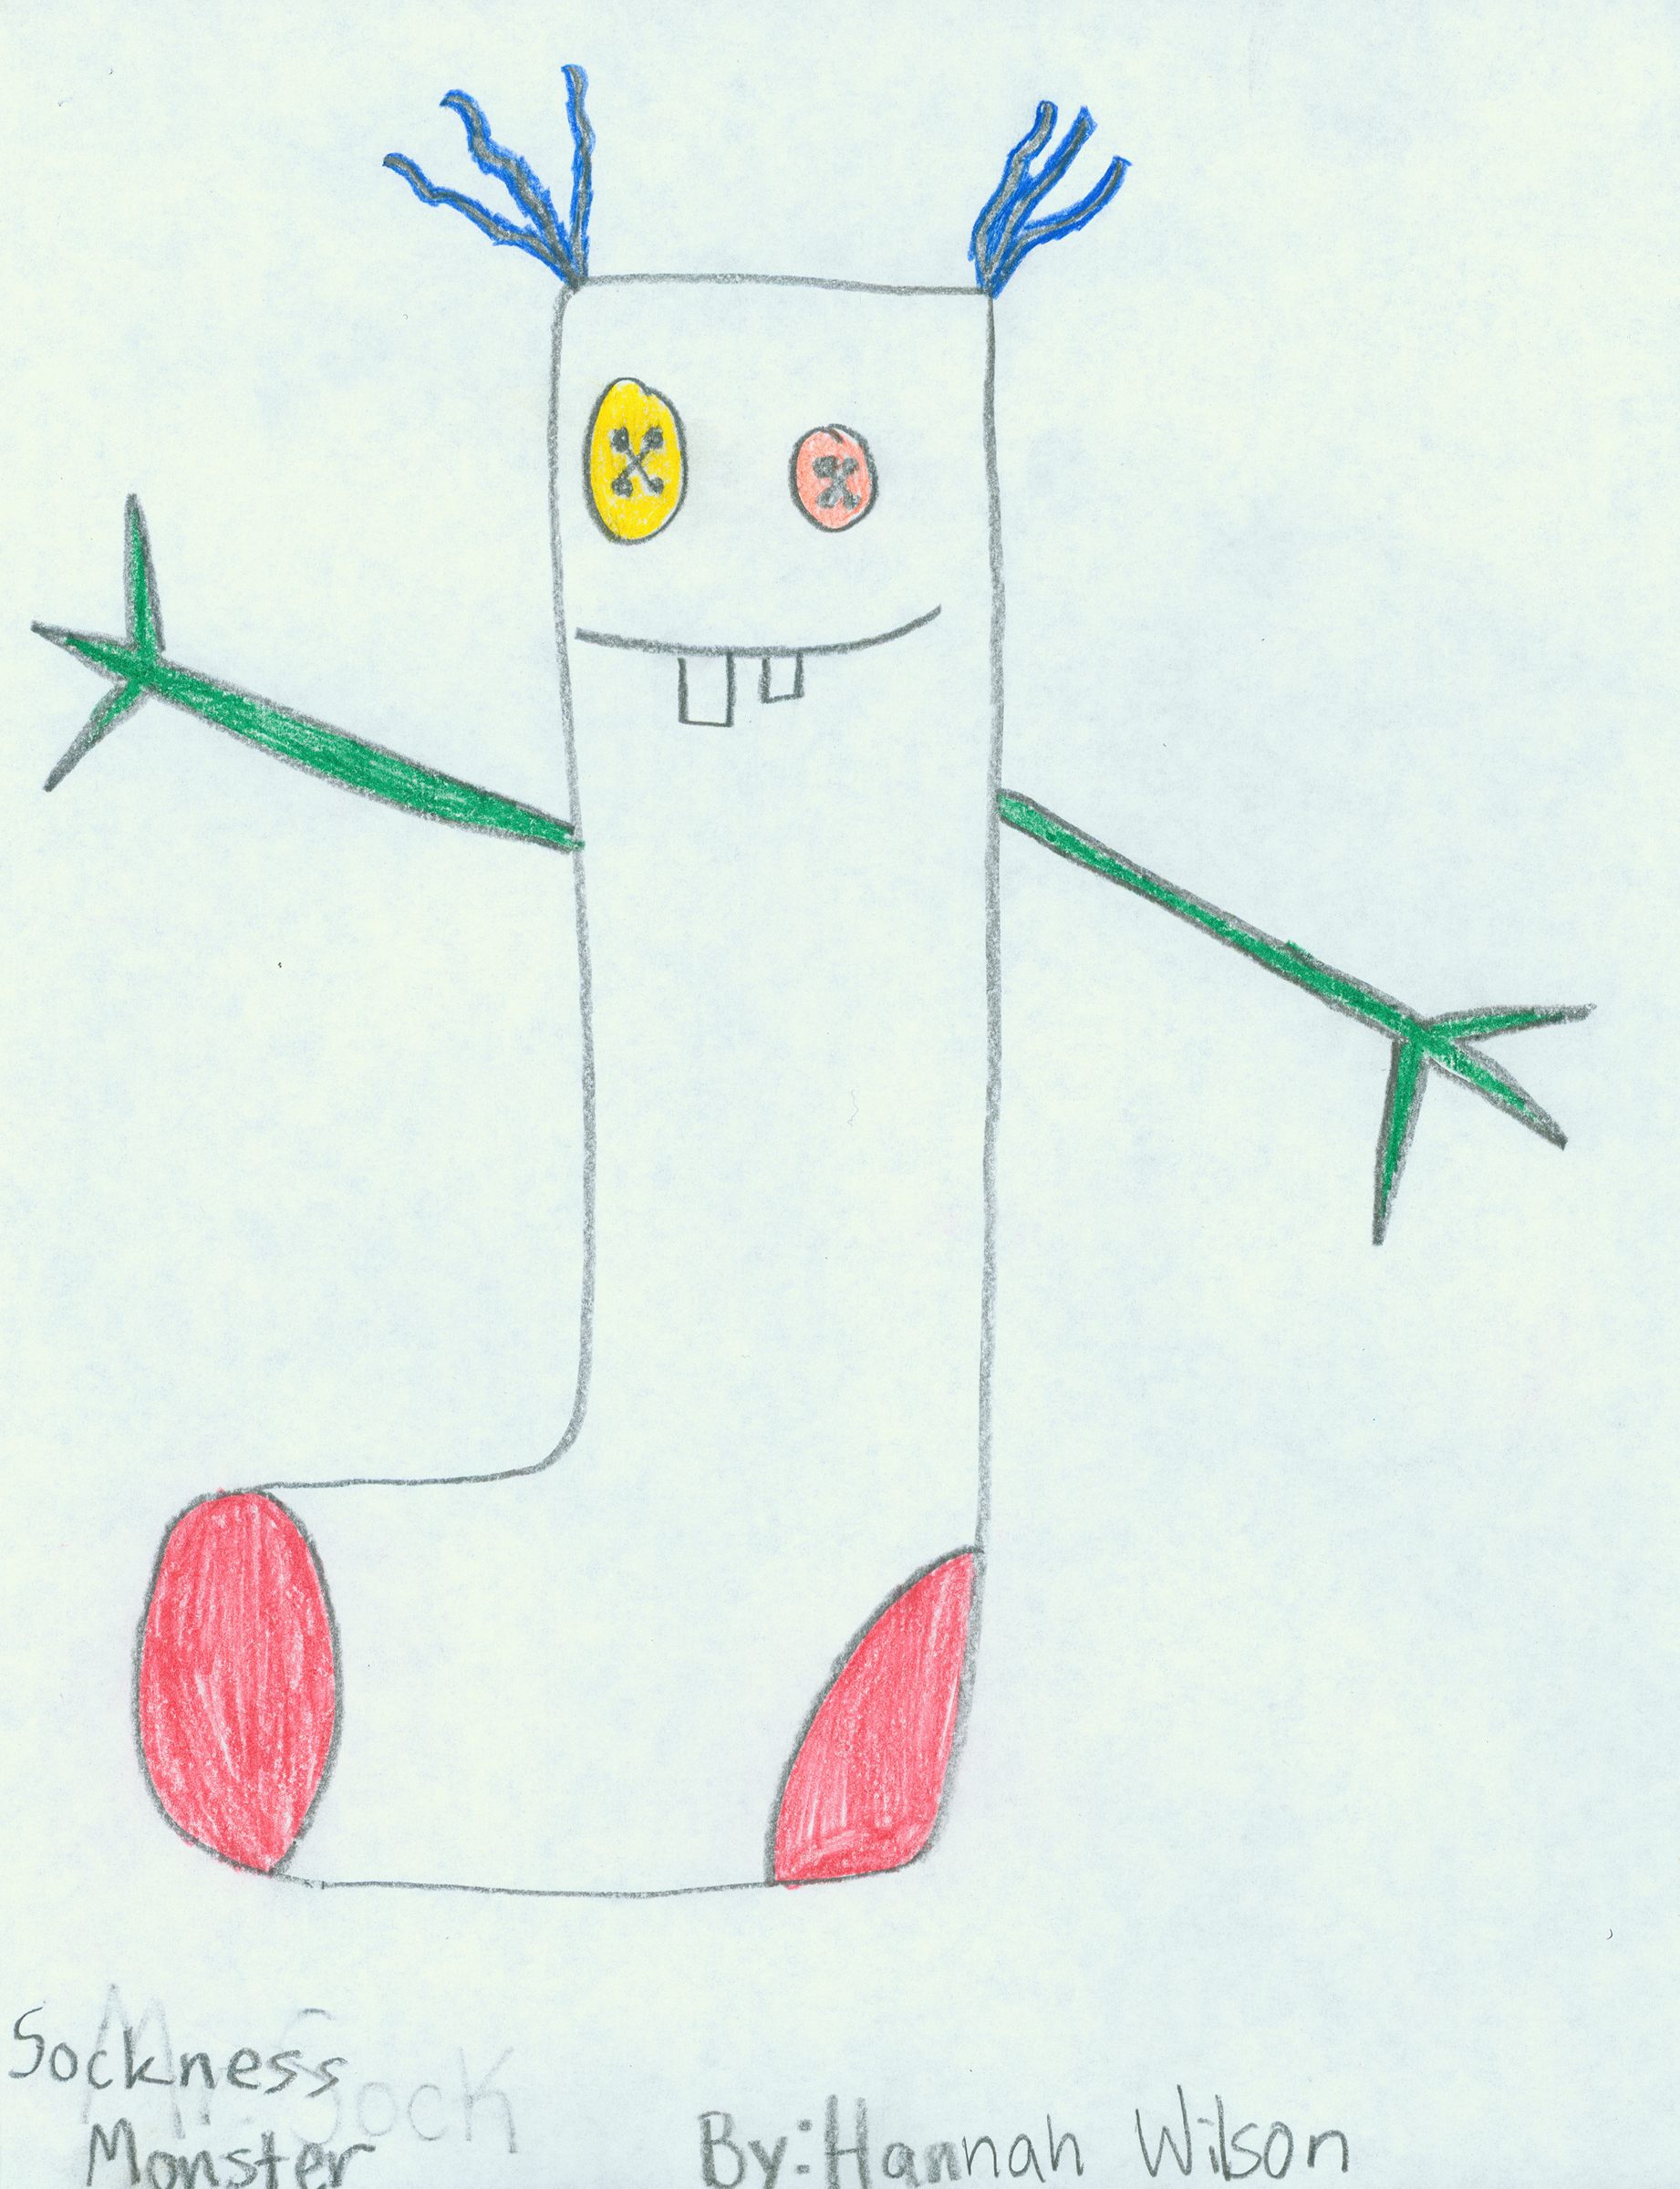 Hannah Wilson (age 11). Sockness Monster,  2009.Crayon on paper;11 x 8 1/2. Collection of Museum of Glass, Tacoma, Washington.   Sockness Monster  artist's statement:  My sockness Monster eats all of the socks when they are in the Washing machine. (At least thats what my mom says) :)